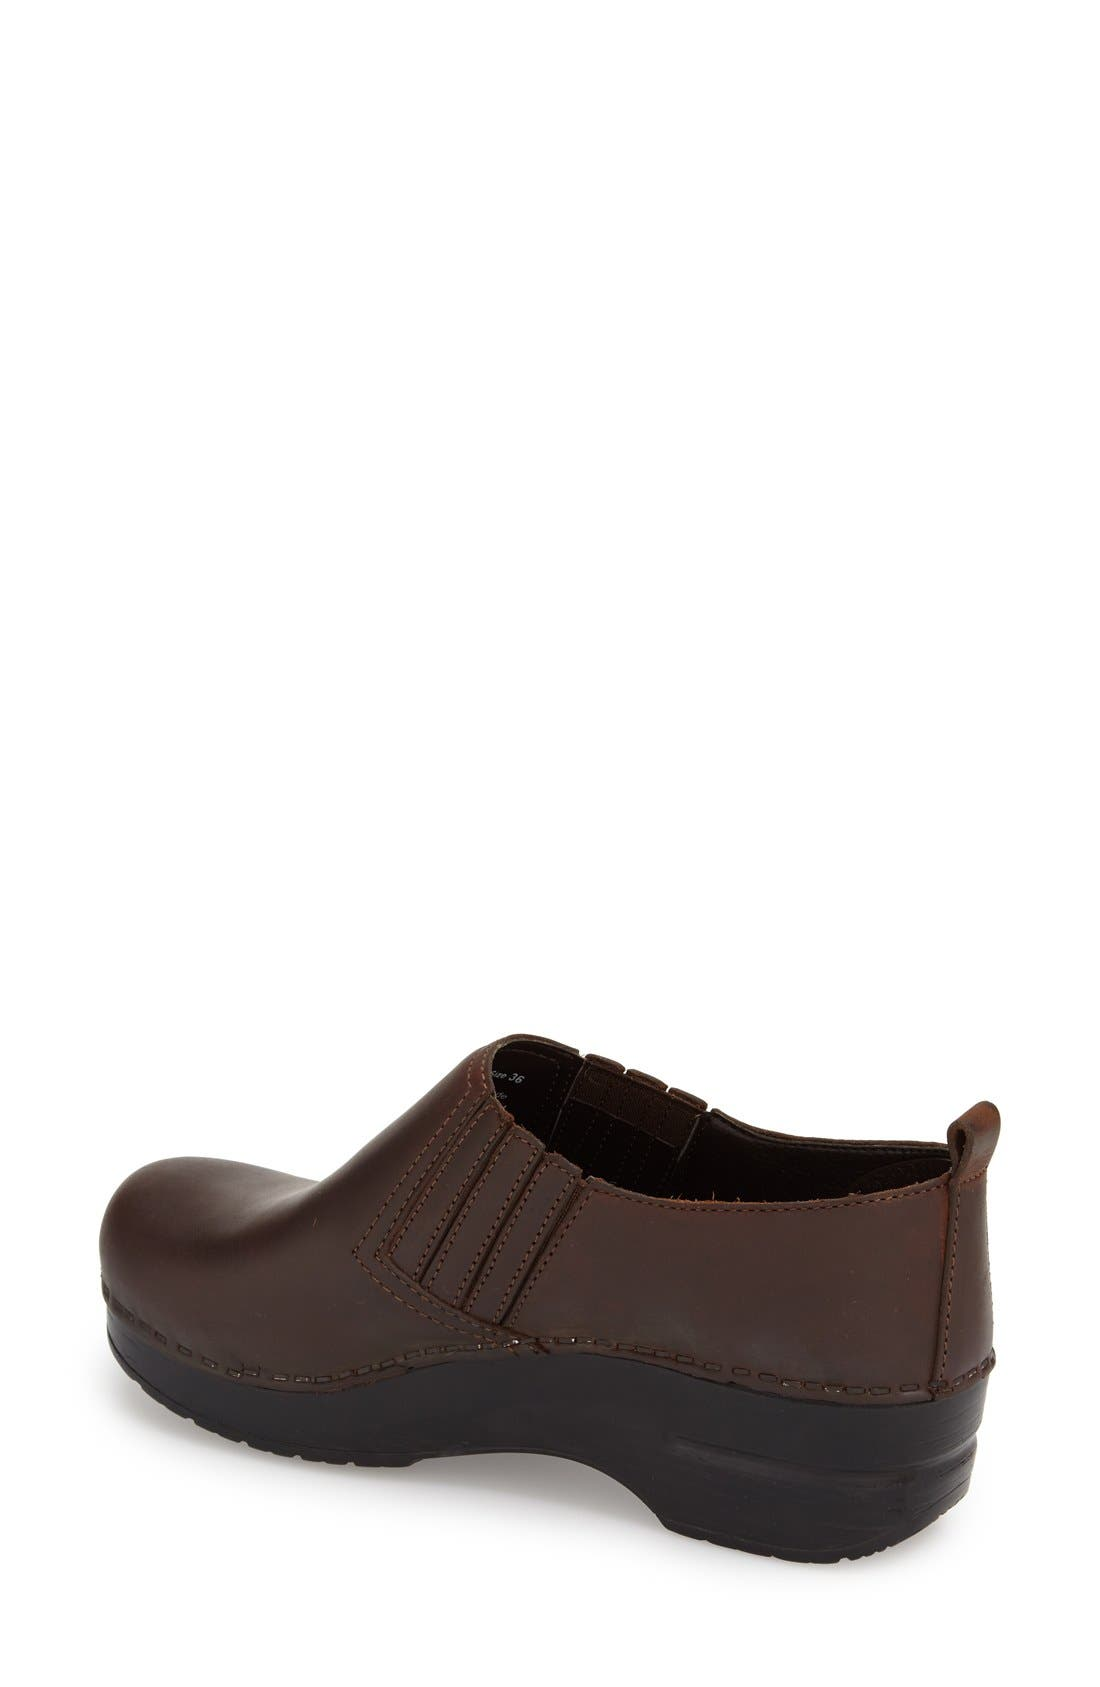 'Piet' Clog,                             Alternate thumbnail 2, color,                             Antique Brown Oiled Leather